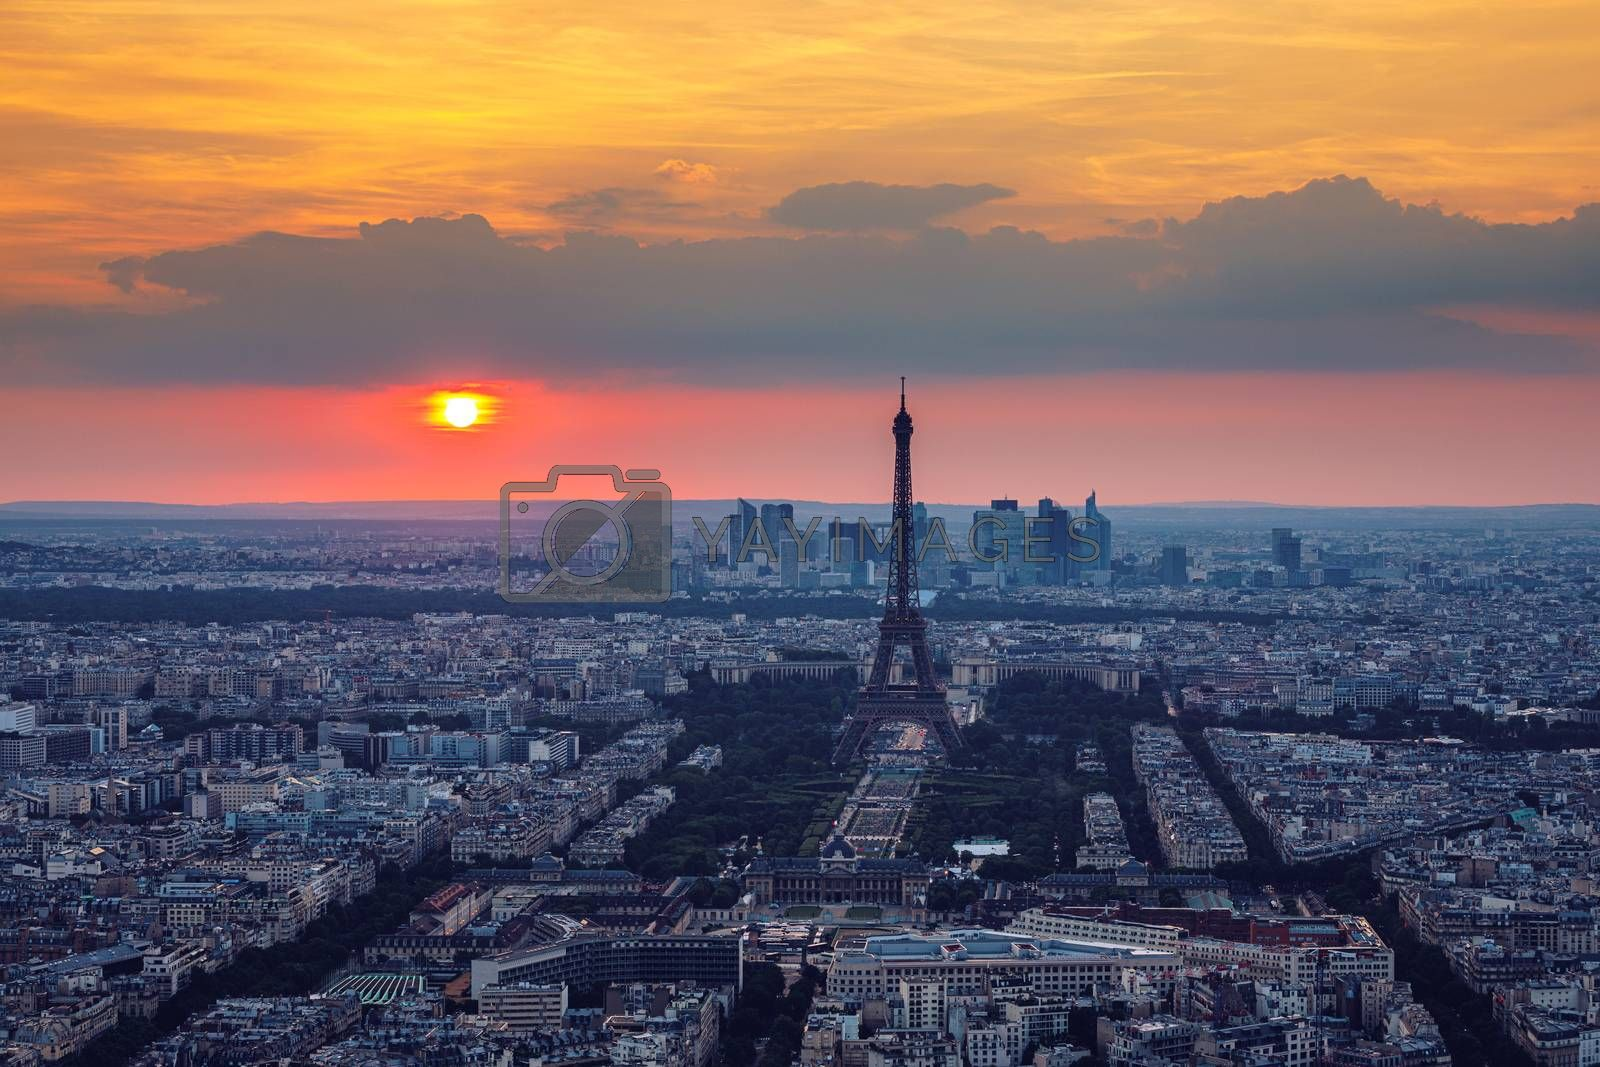 View of Paris with Eiffel Tower from Montparnasse building. Eiffel tower view from Montparnasse at sunset, view of the Eiffel Tower and La Defense district in Paris, France.